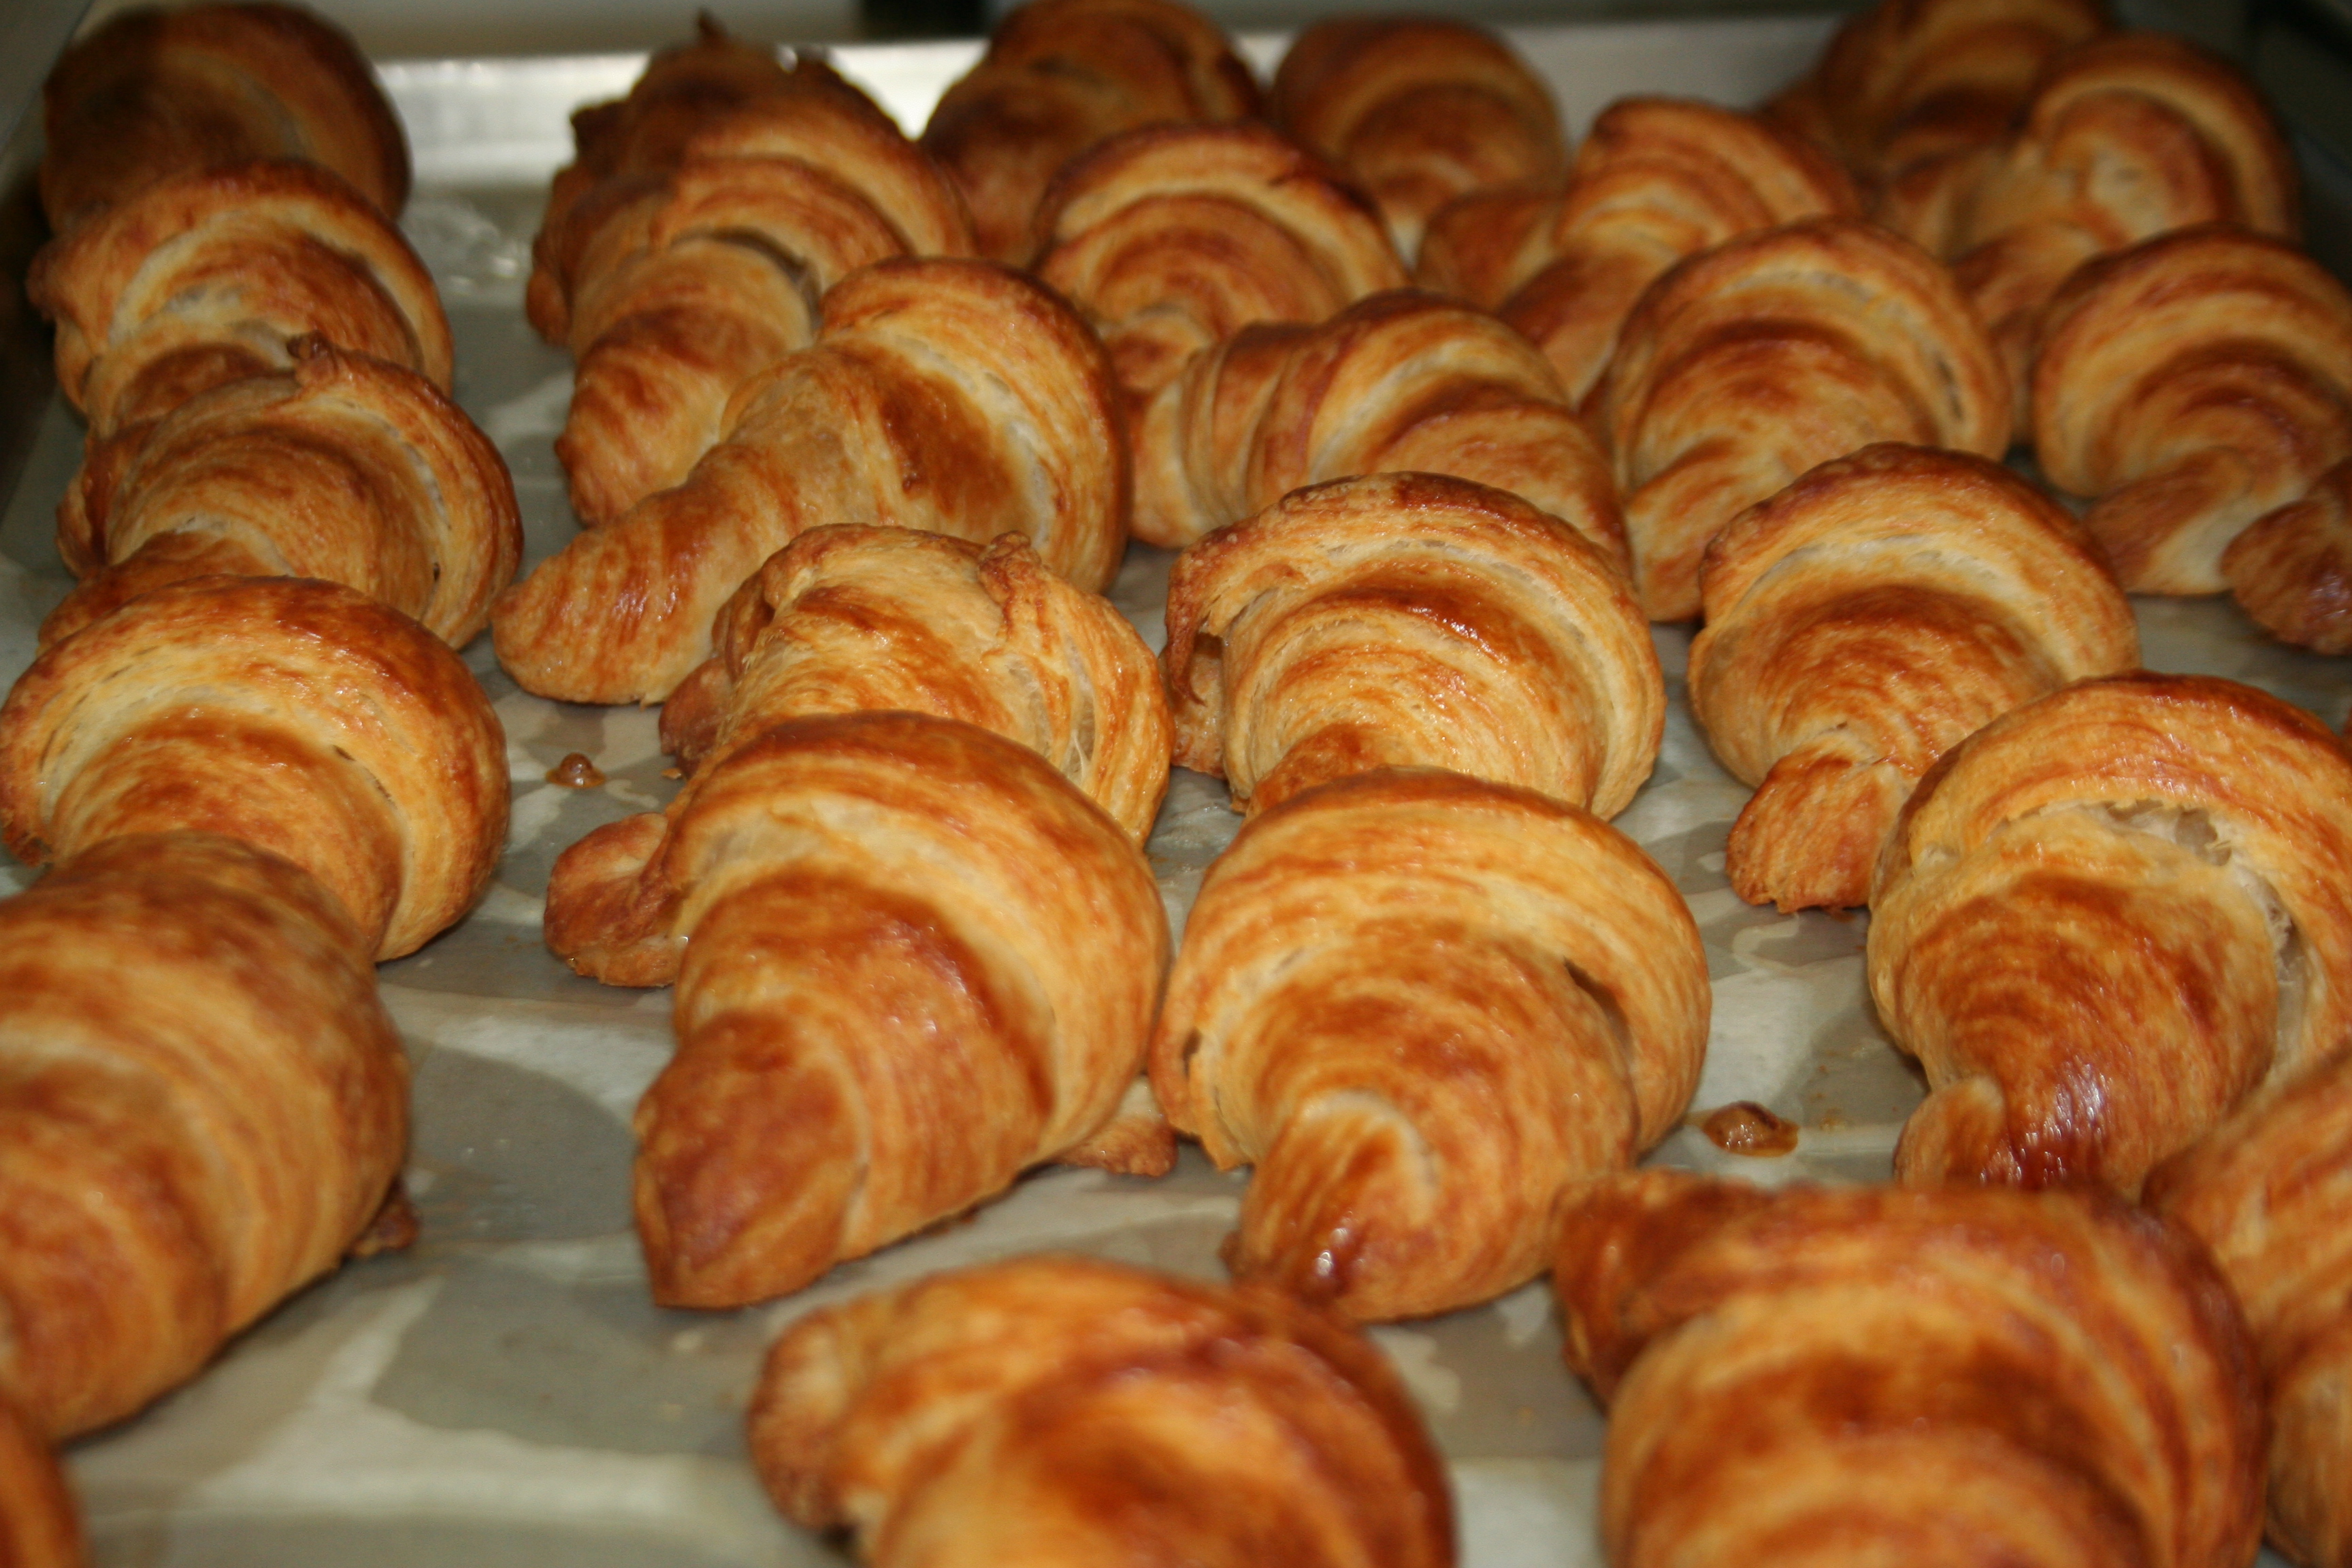 ... they are !! I had the honor of taking a class on French croissants at